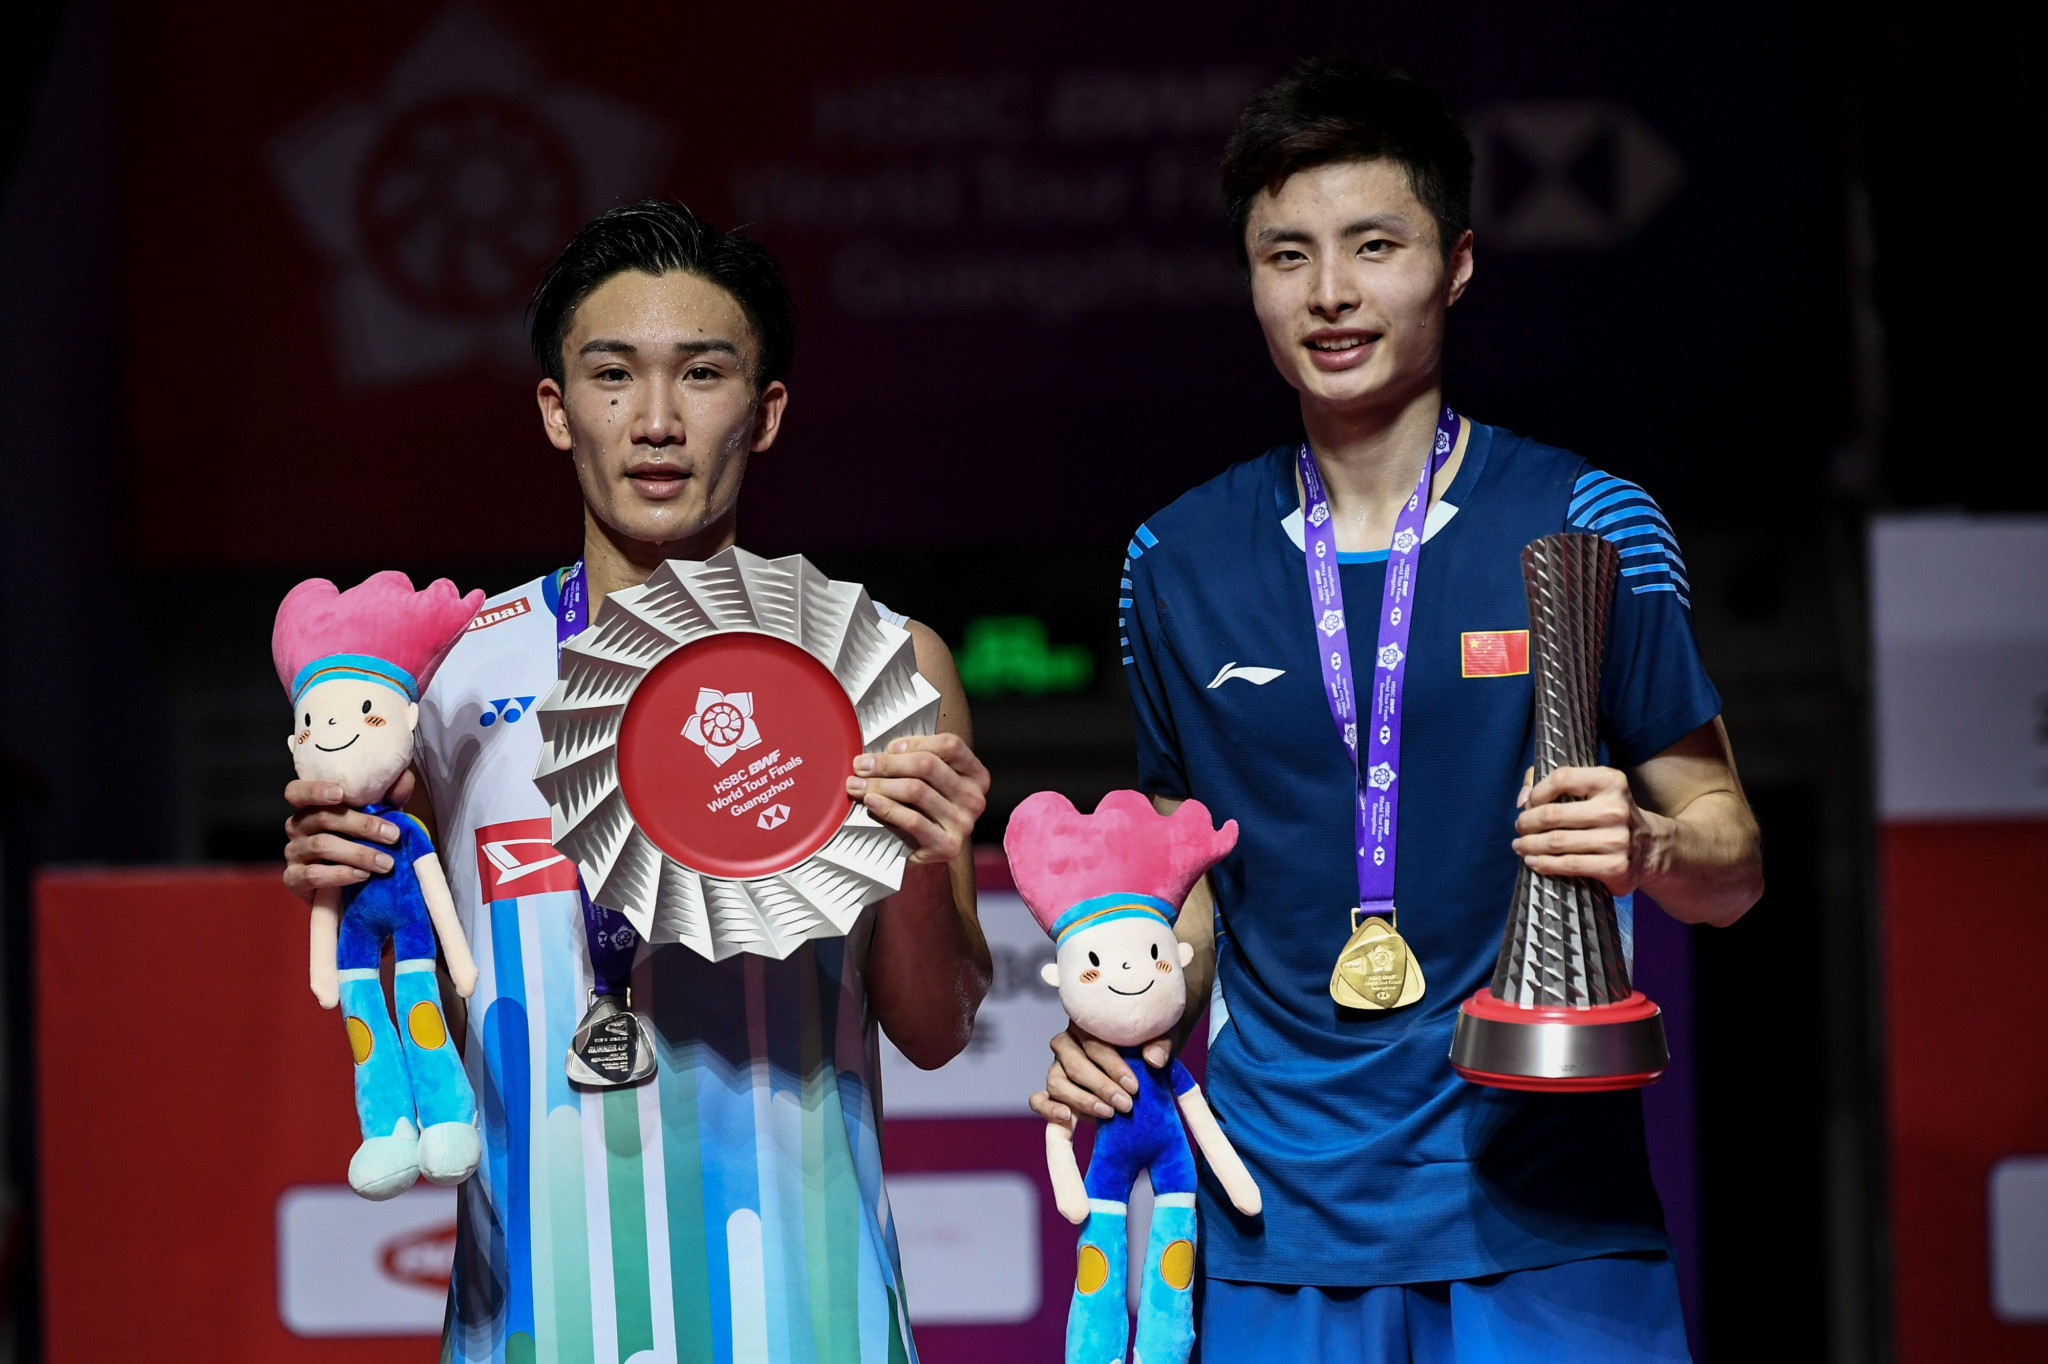 Kento Momota, left, and Shi Yuqi, right, could meet once again in the final of the BWF Malaysia Open ©Getty Images